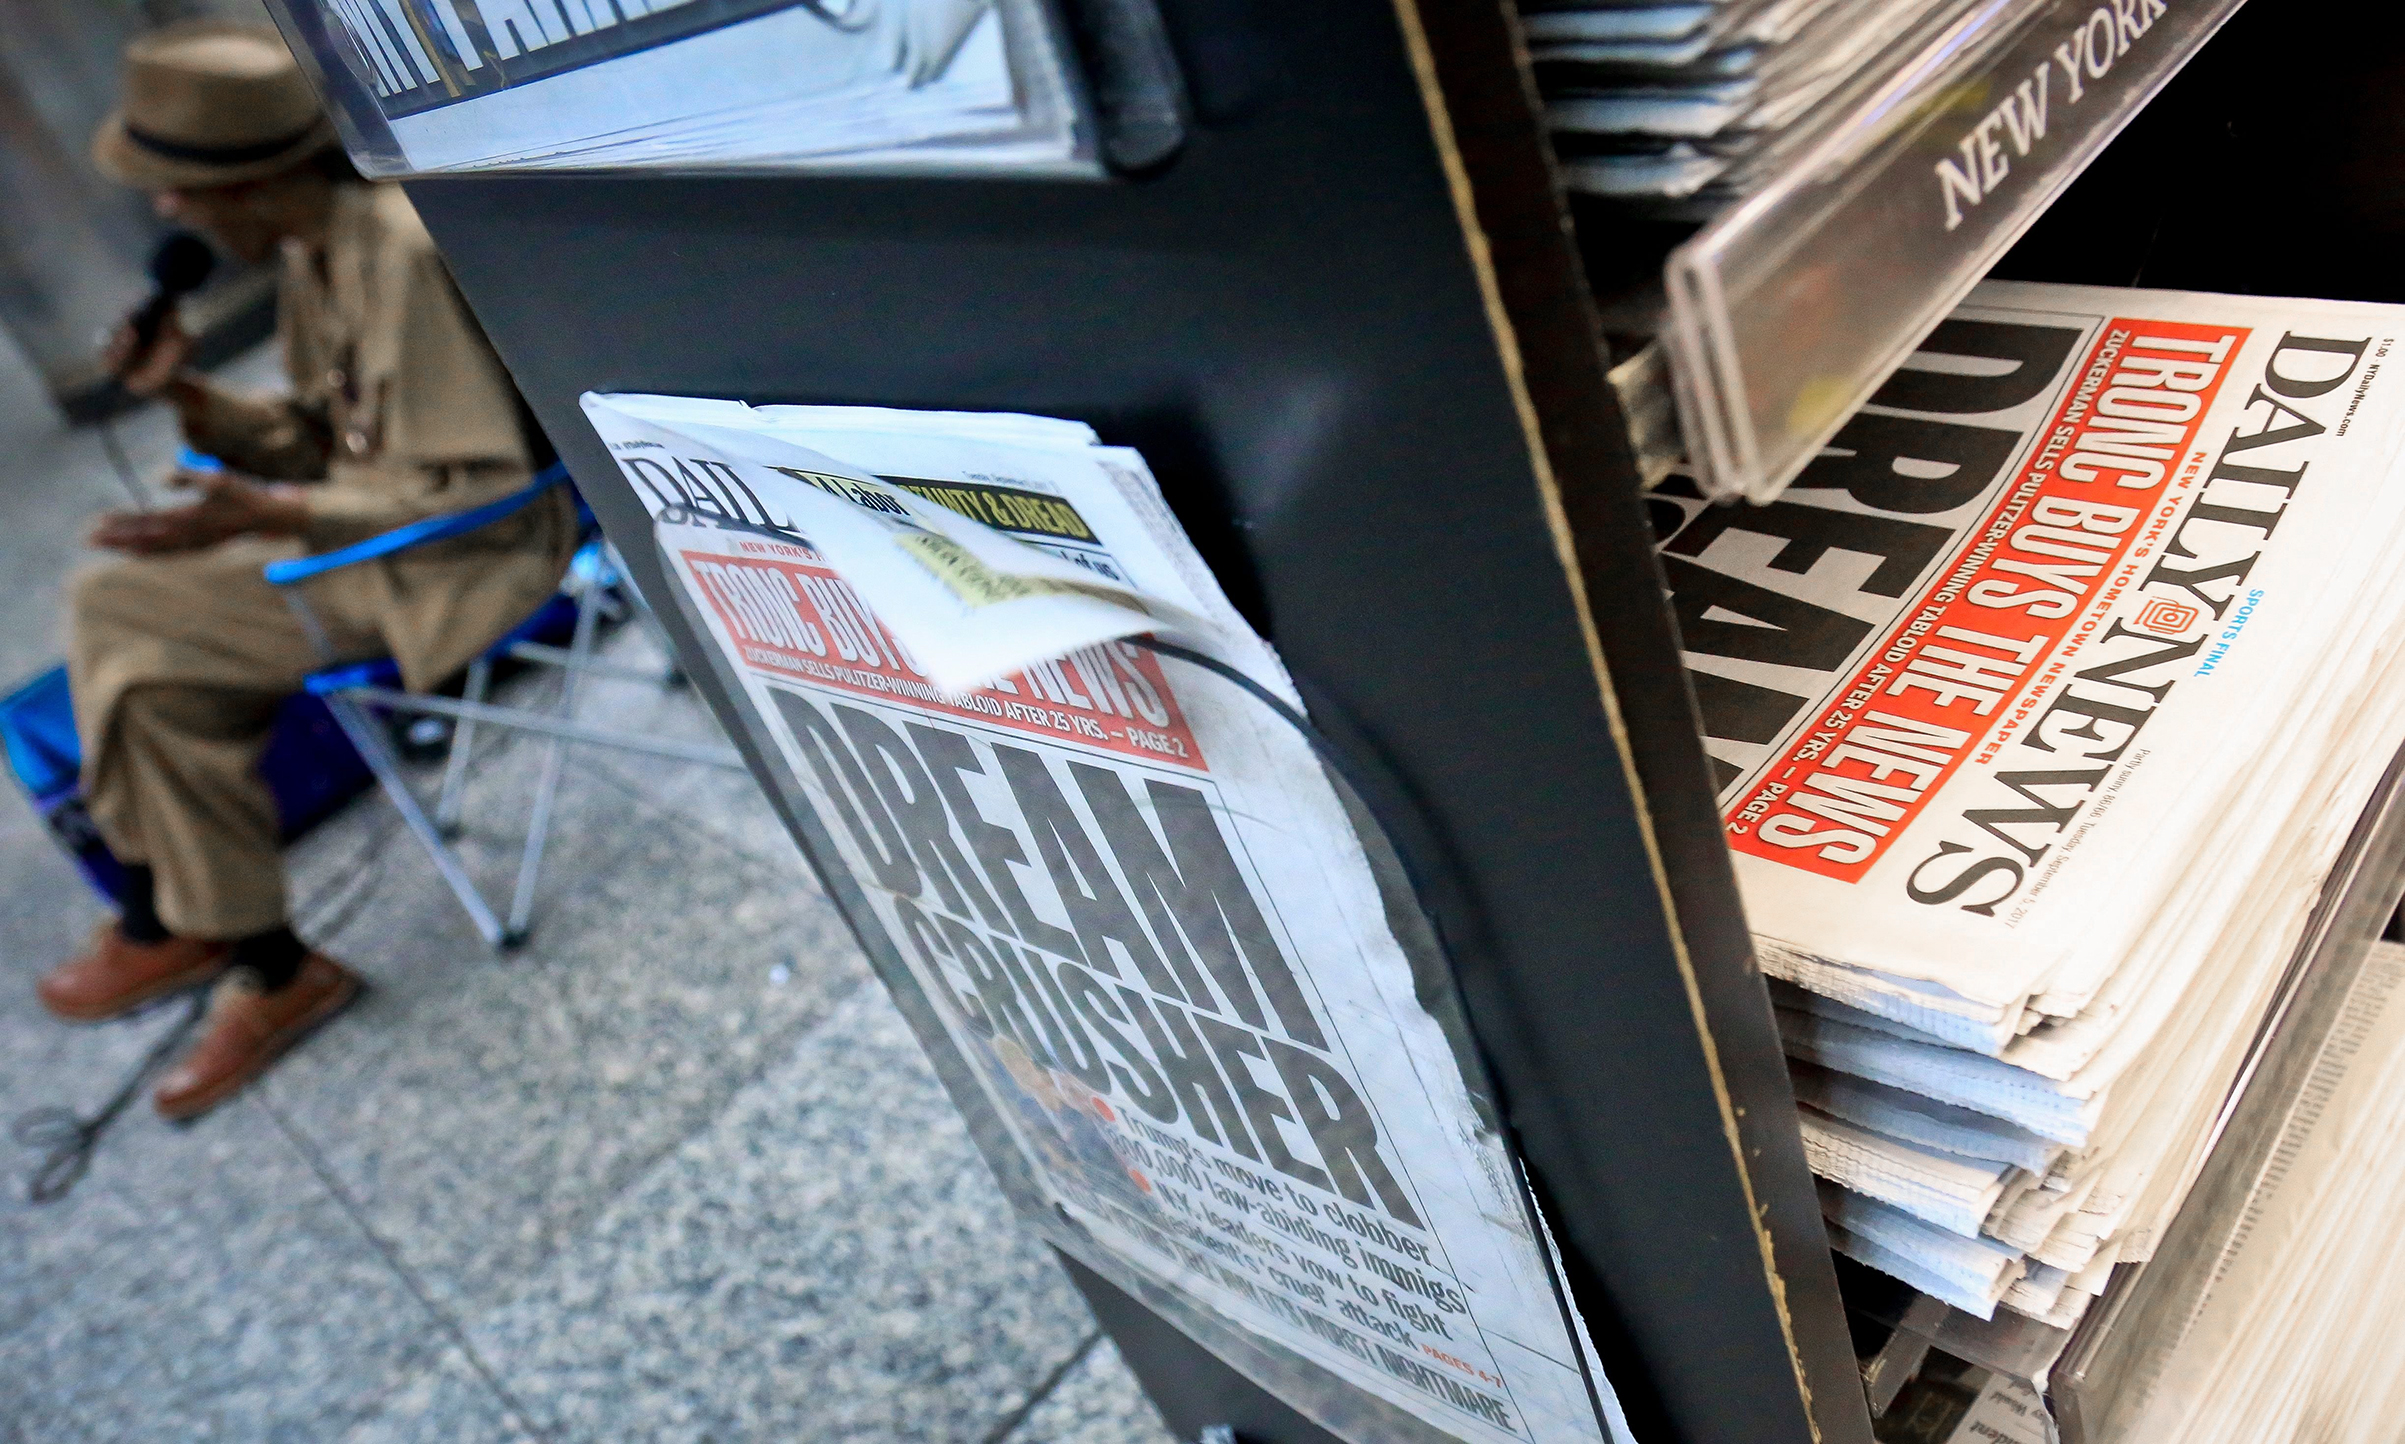 The New York Daily News covered its own sale last fall; the new owner has made drastic cuts